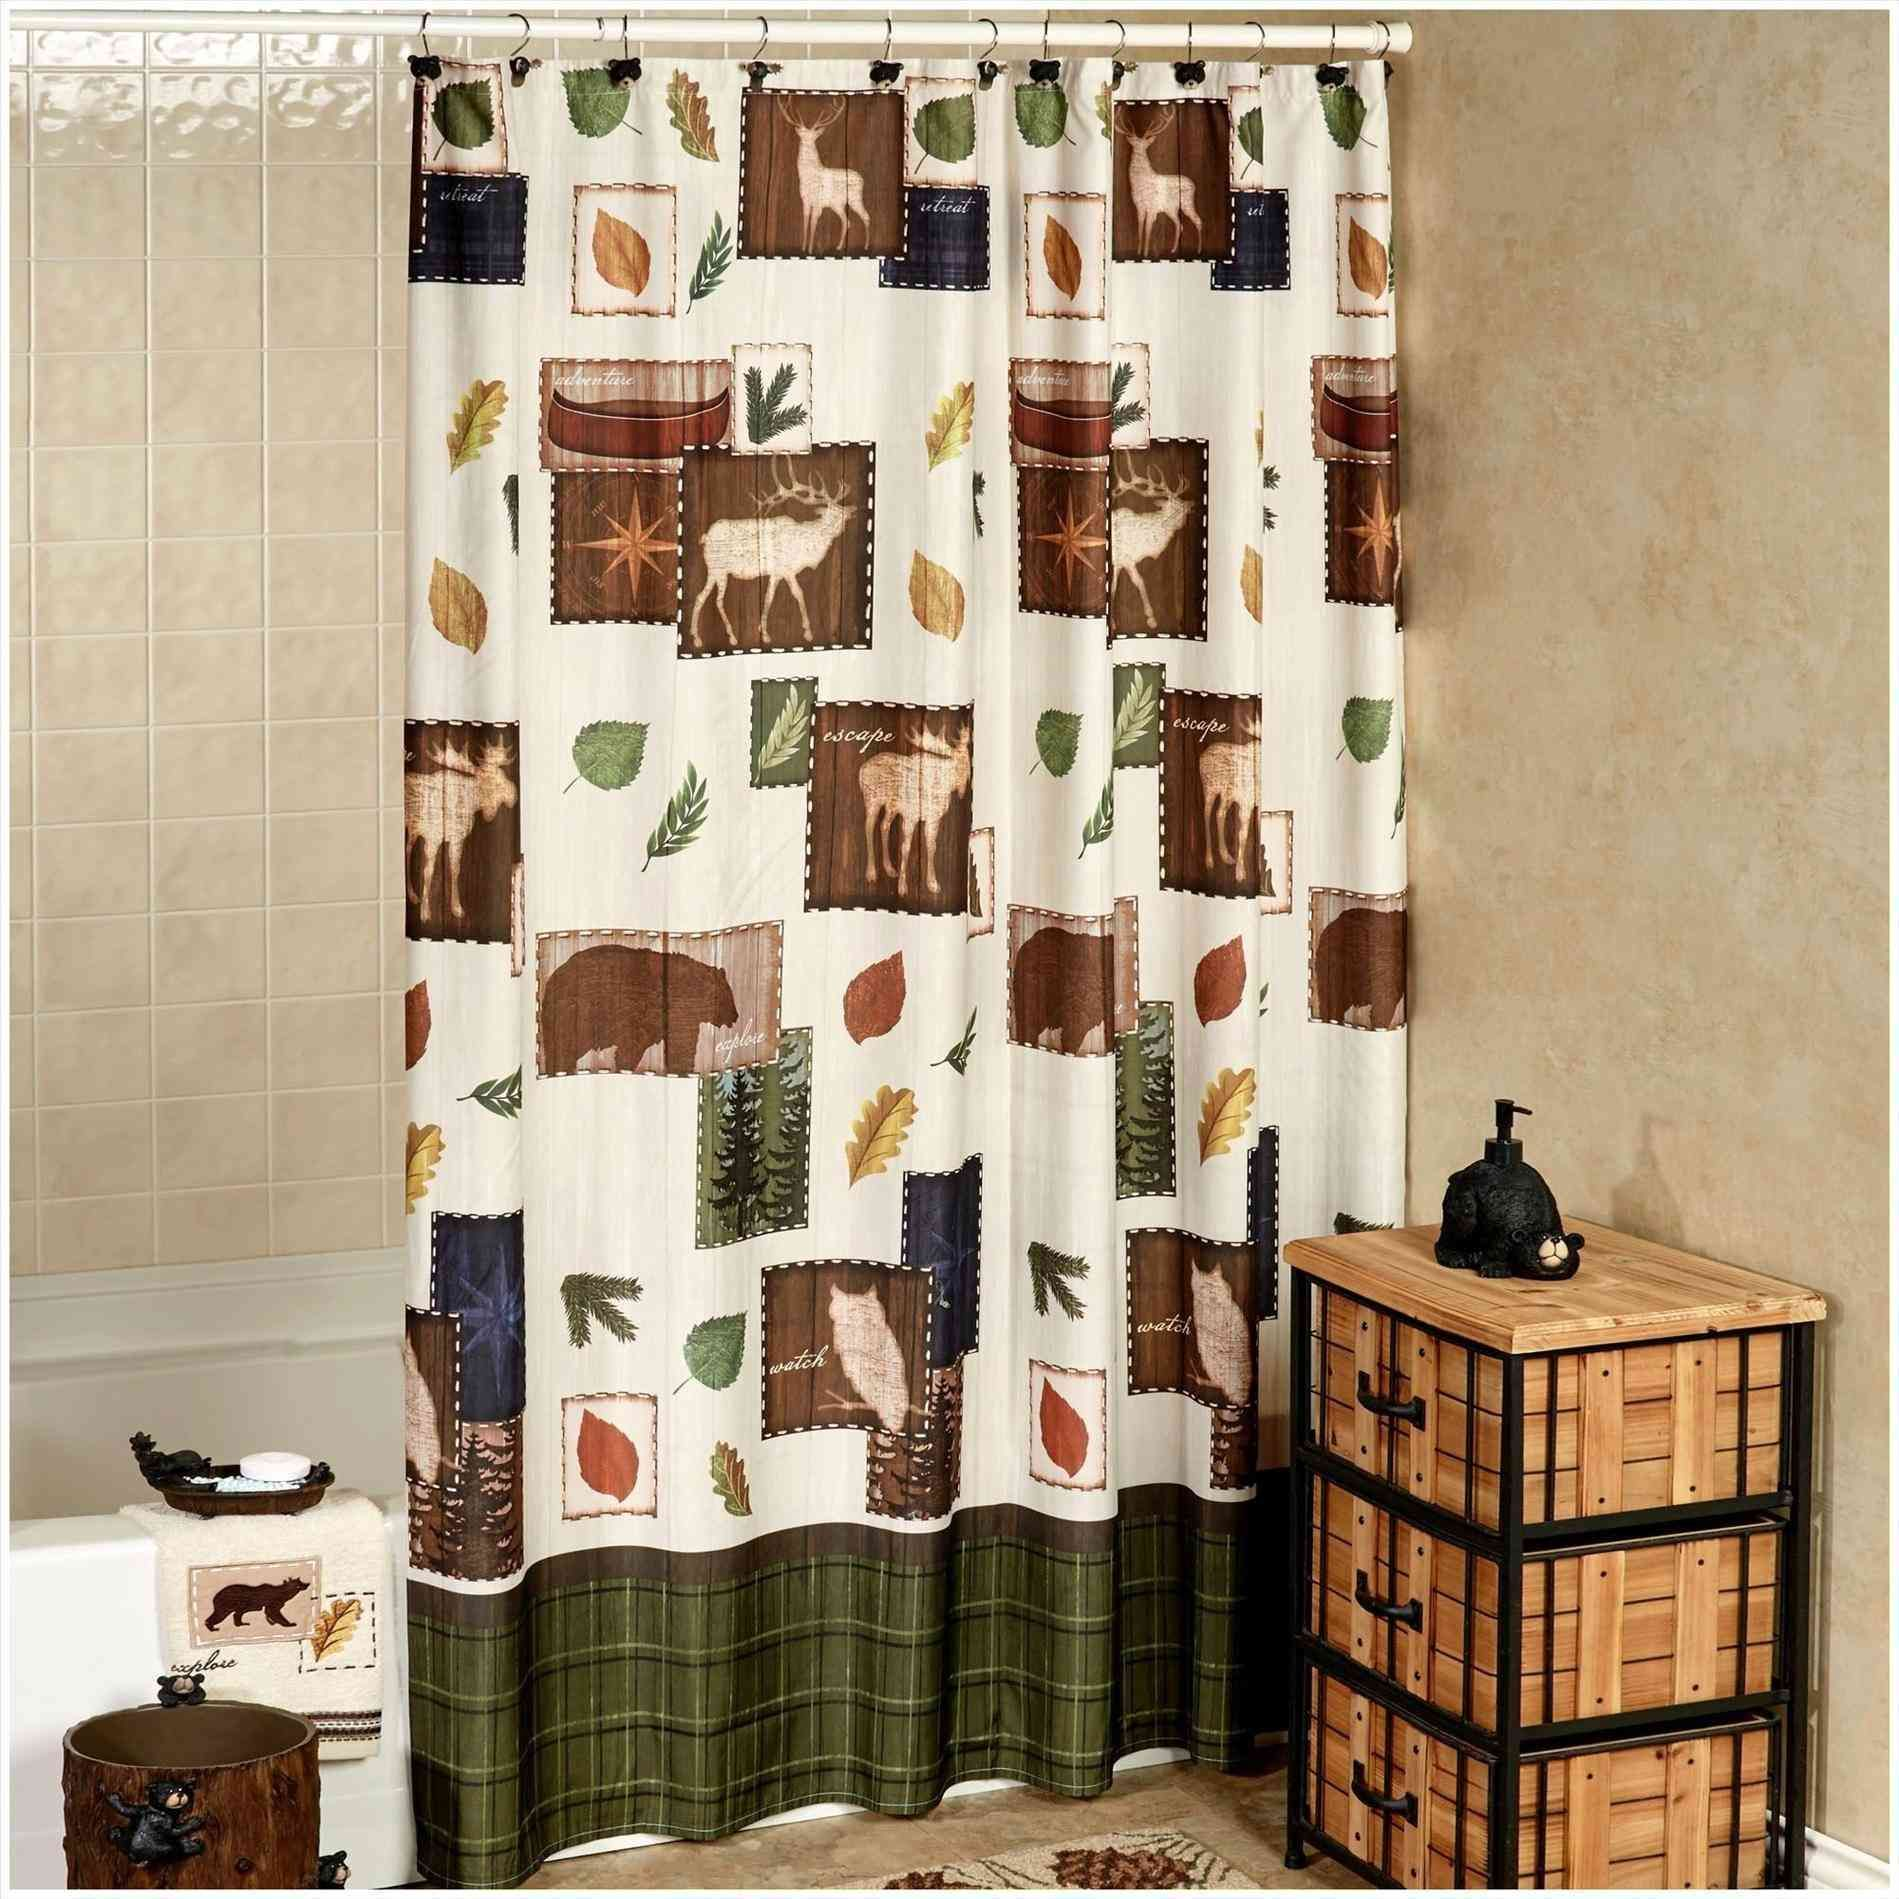 New Post rustic bathroom shower curtains LivingRooms